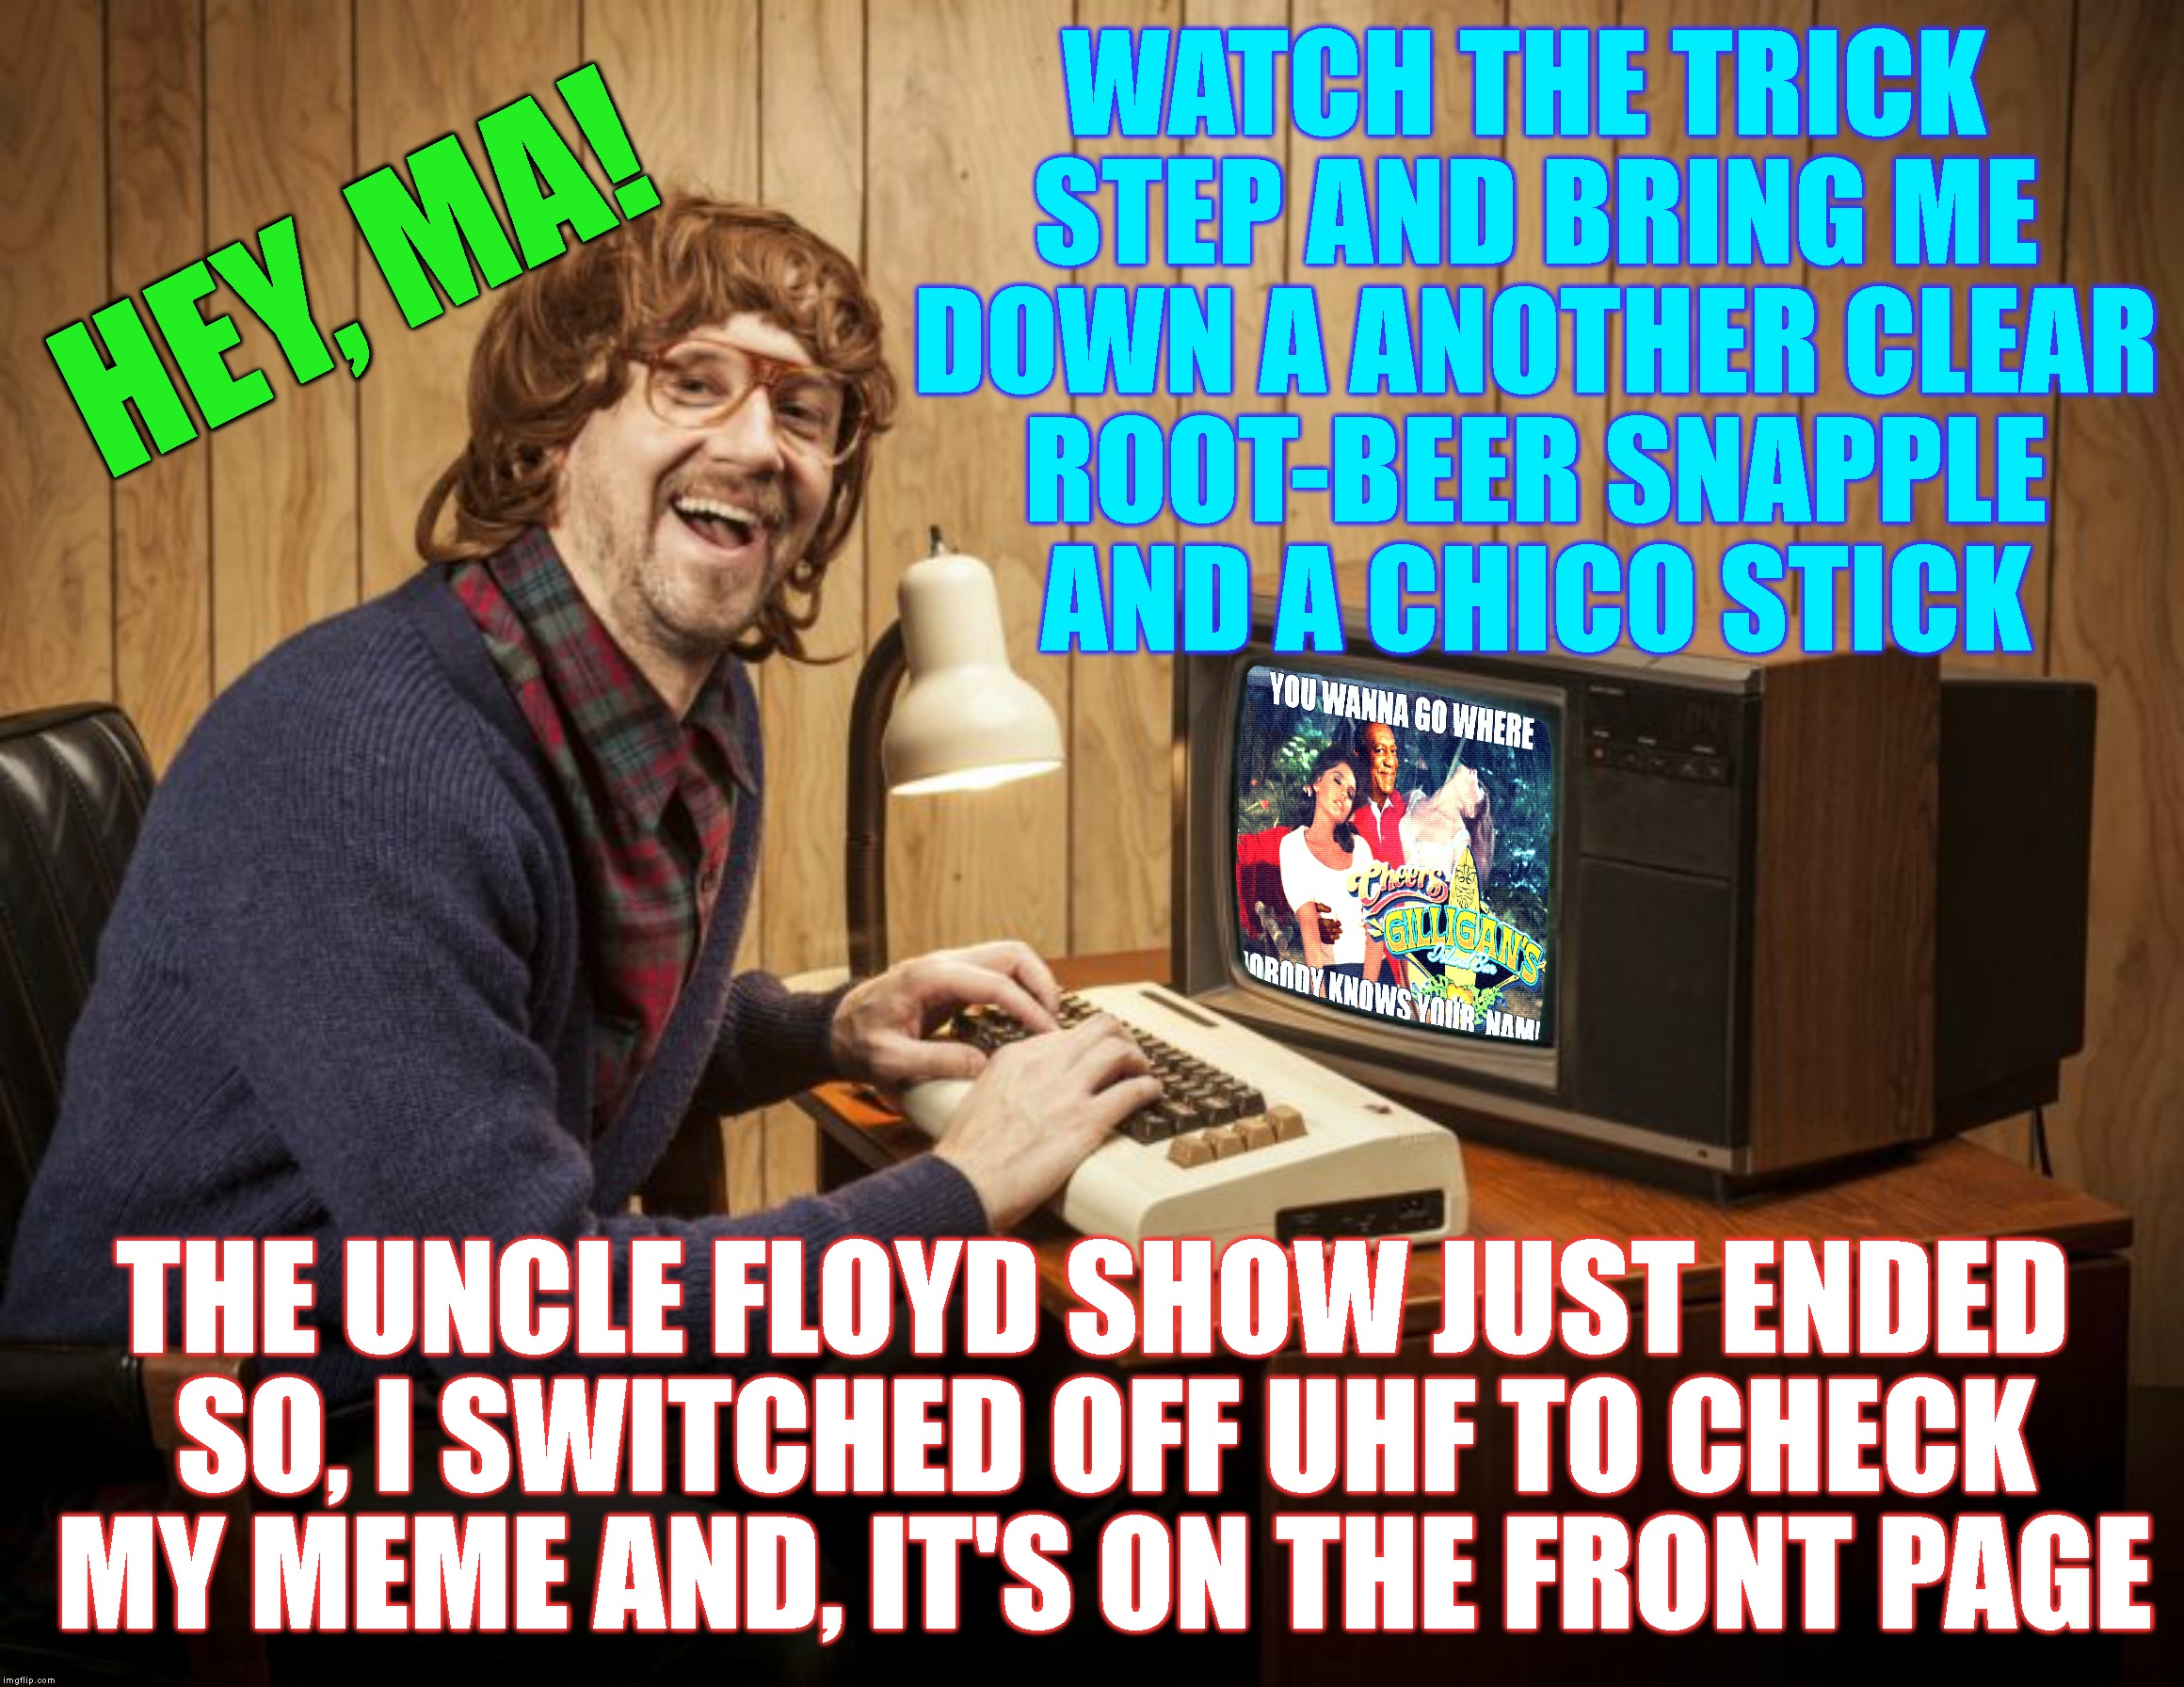 Thanks For Getting My Meme To The Front Page (I Hope You All Get Some Of These References) | WATCH THE TRICK STEP AND BRING ME DOWN A ANOTHER CLEAR ROOT-BEER SNAPPLE AND A CHICO STICK THE UNCLE FLOYD SHOW JUST ENDED SO, I SWITCHED OF | image tagged in imgflip,imgflip users,thank you,thanks,front page,upvotes | made w/ Imgflip meme maker